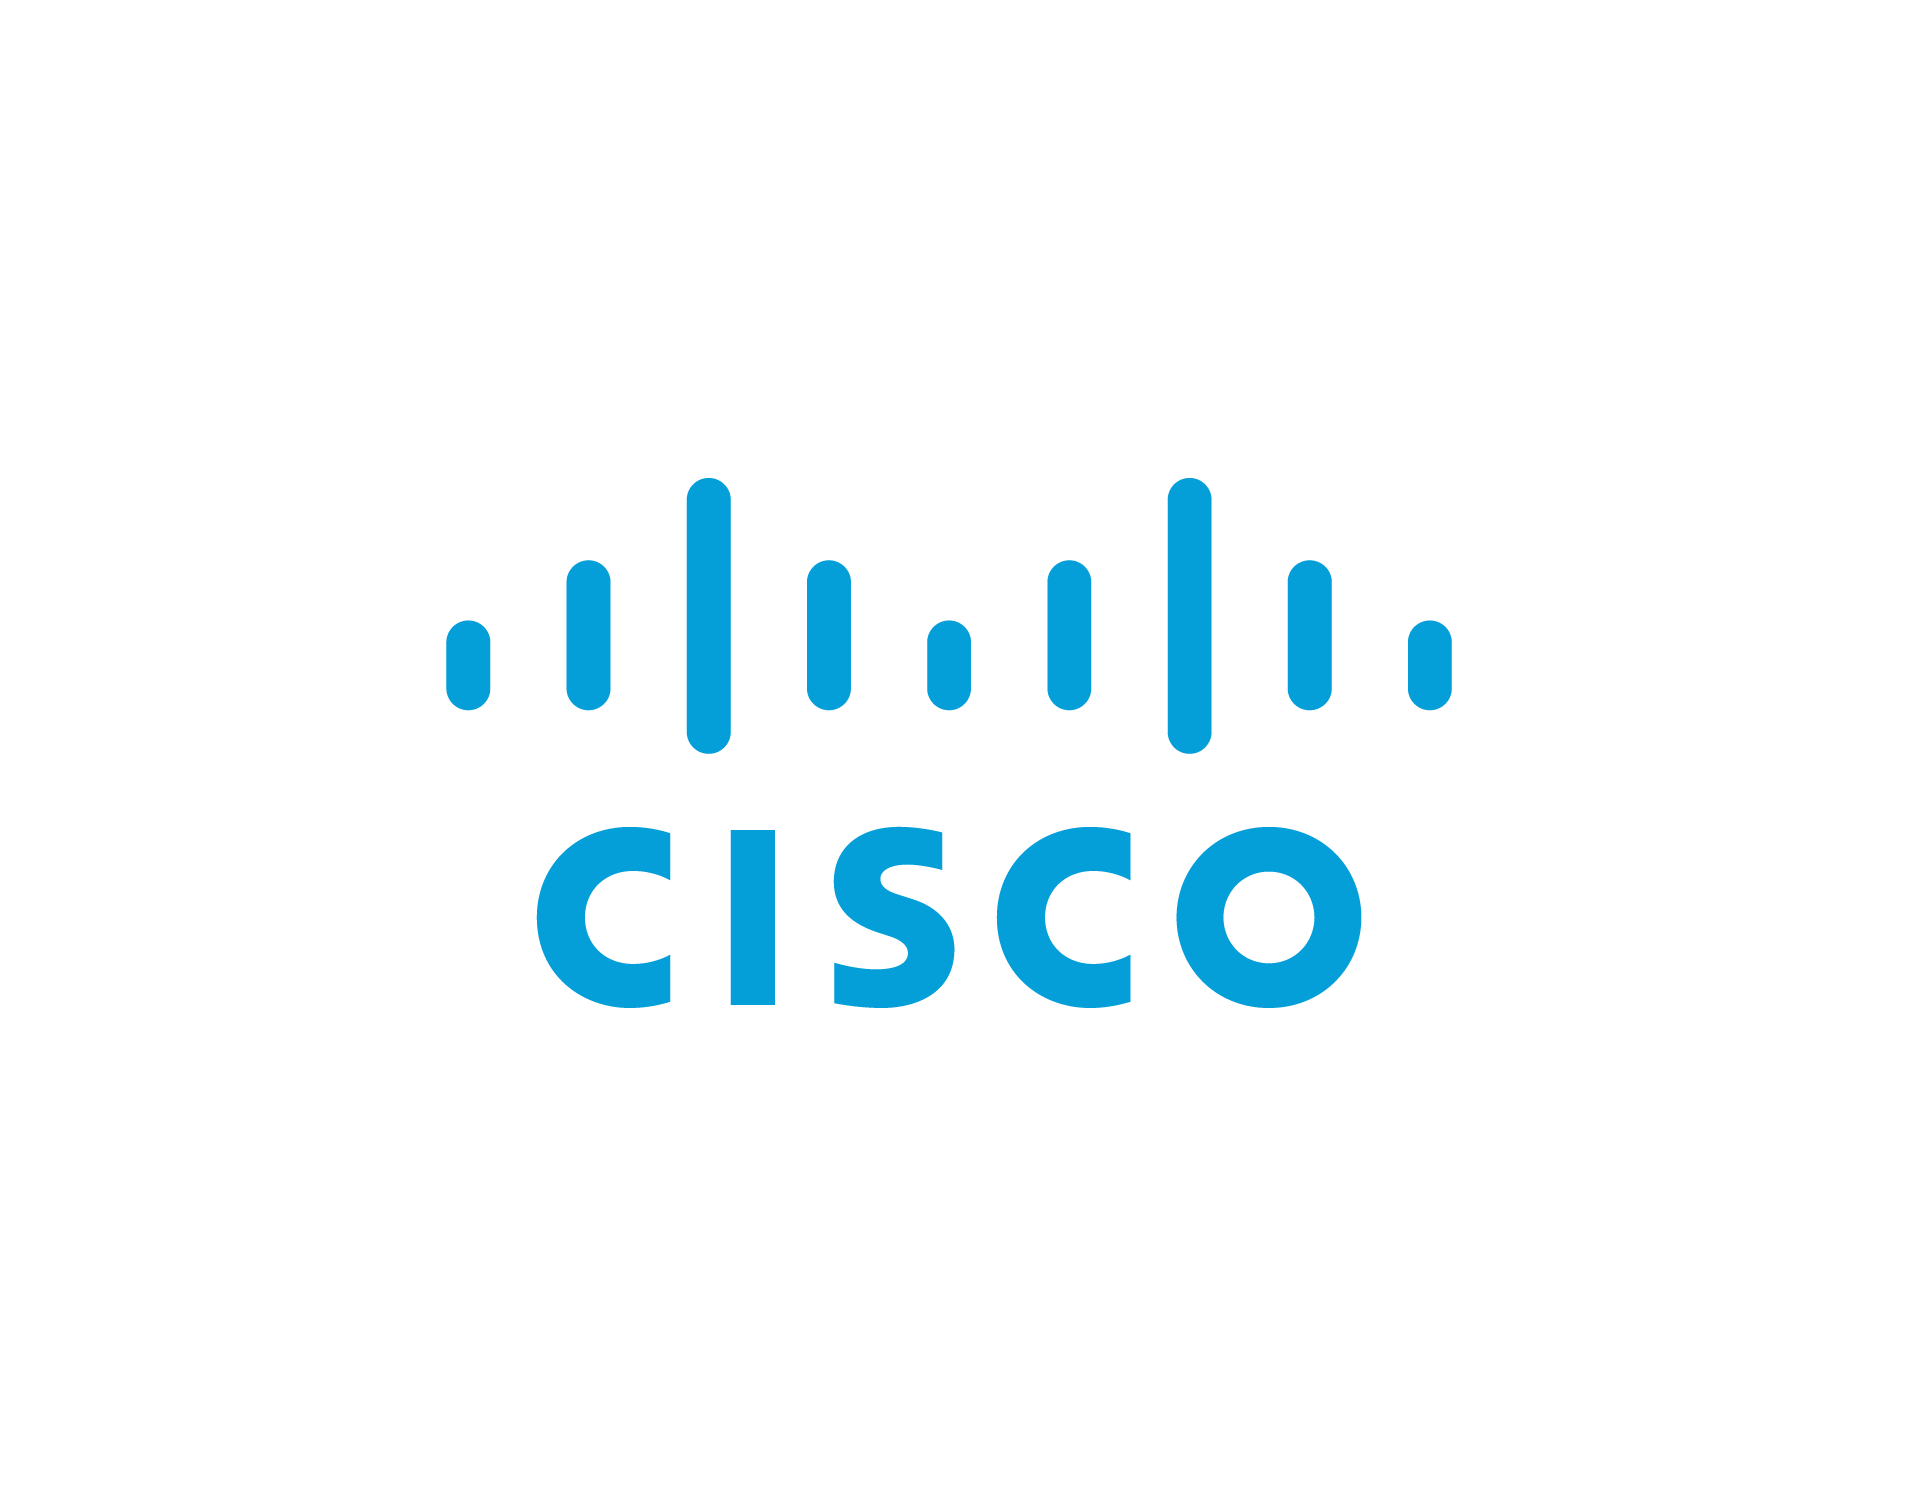 Cisco_logo